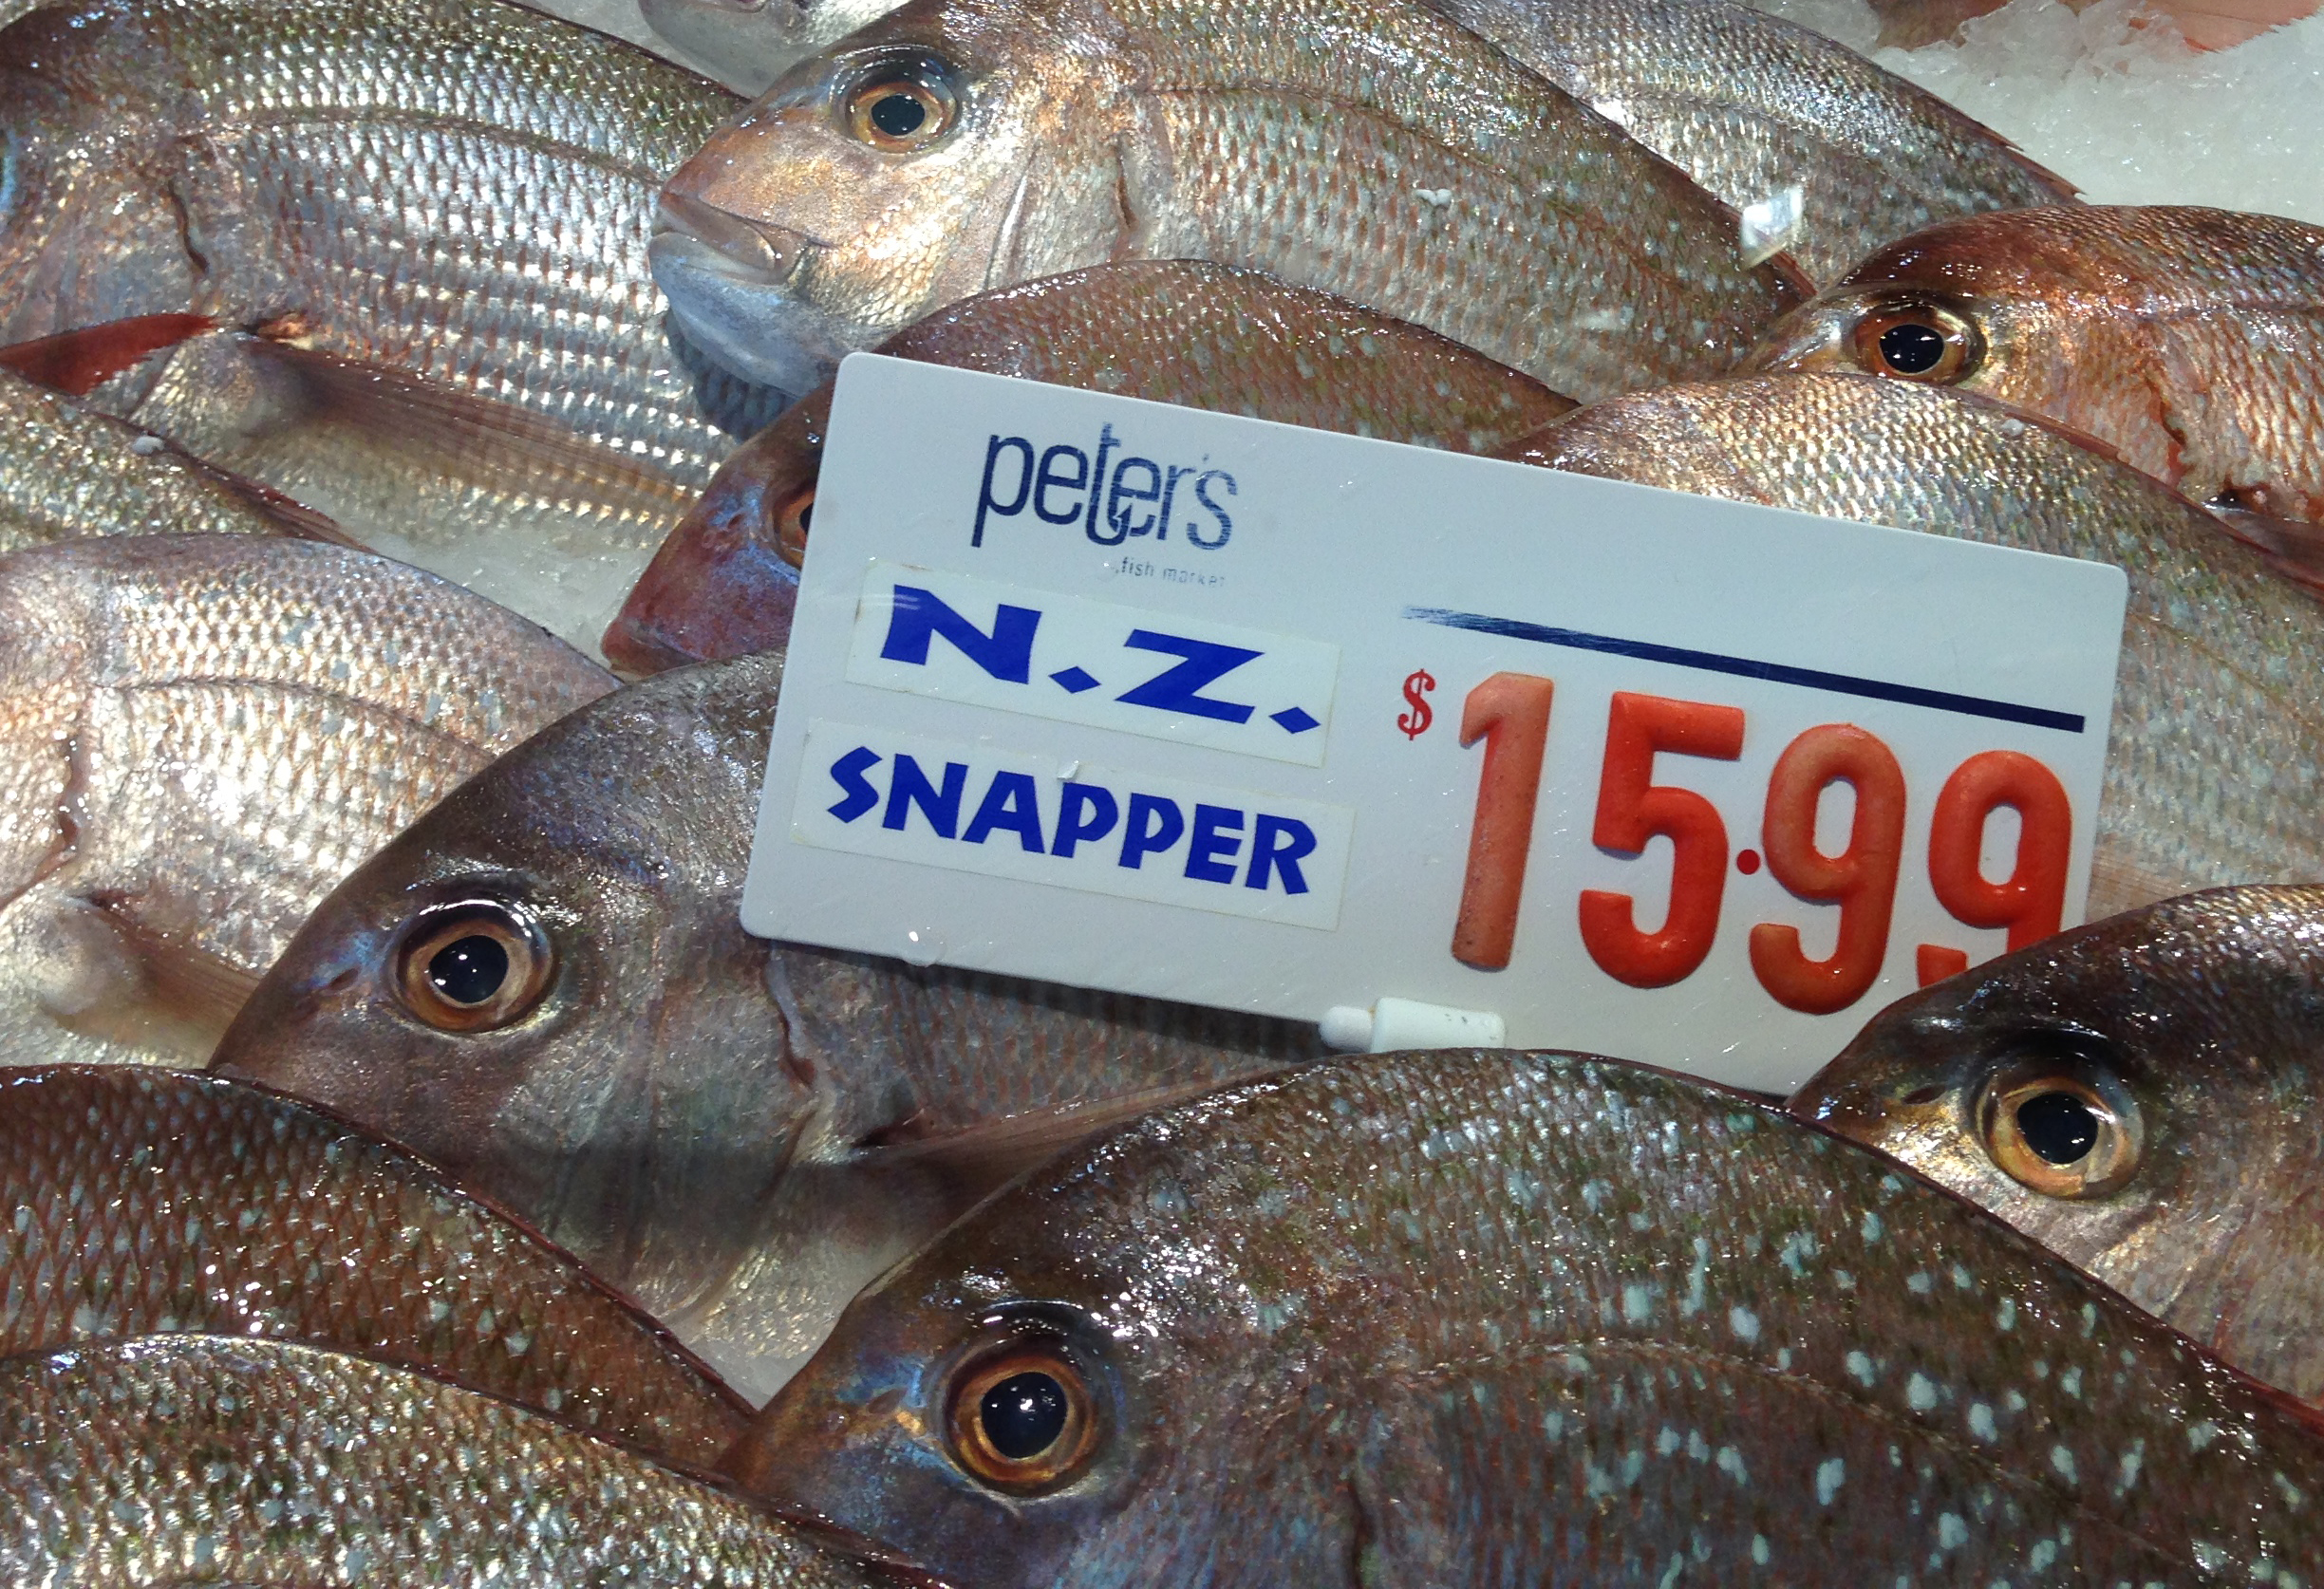 Credit: Reg Watson. NZ snapper for sale in Sydney Fish Market